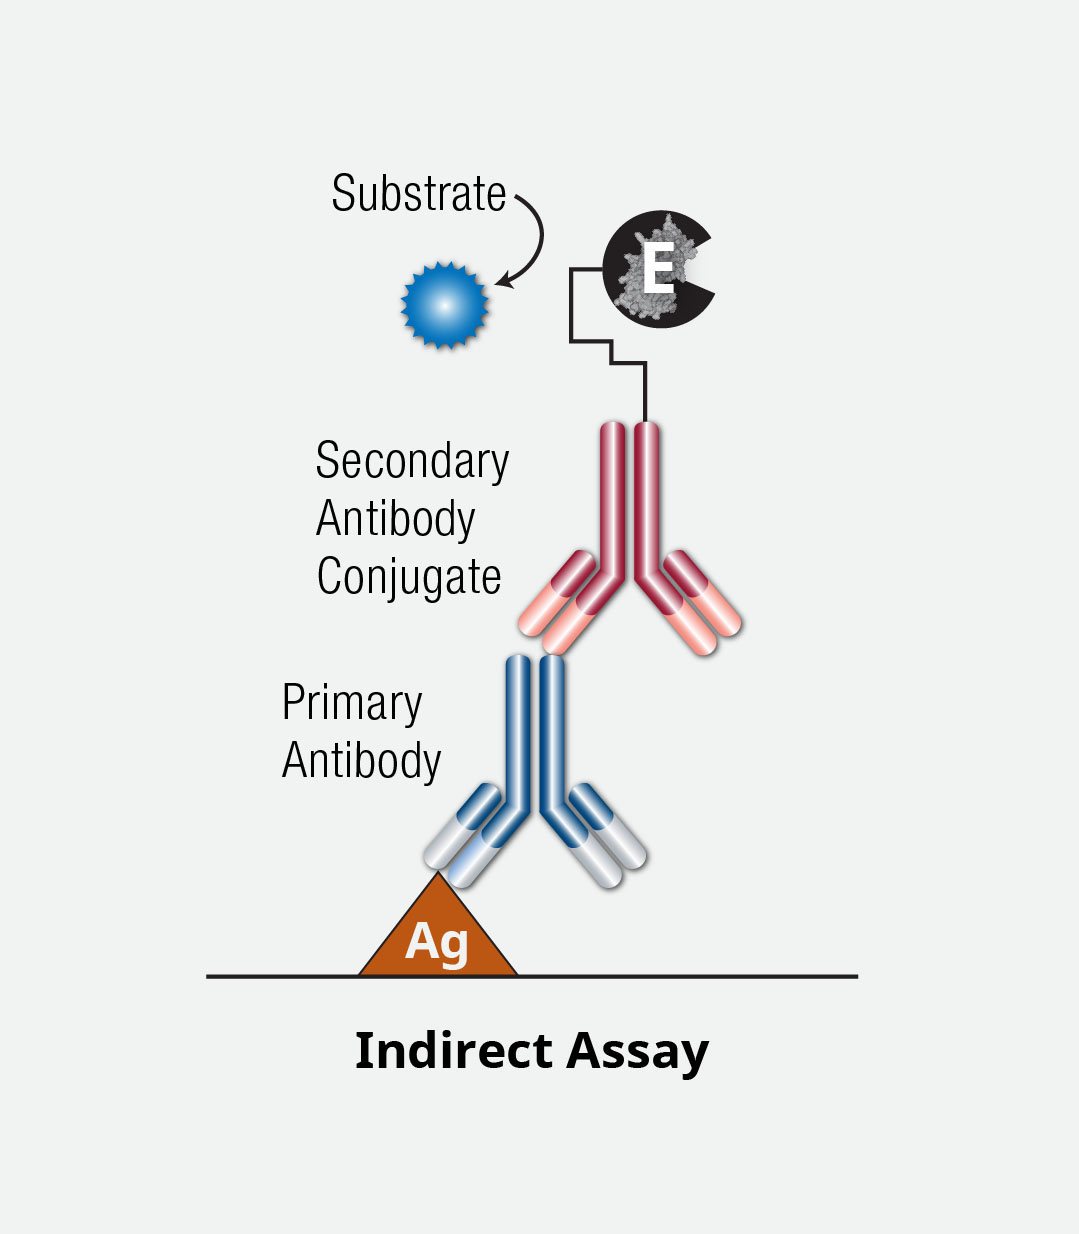 ELISA Indirect Assay